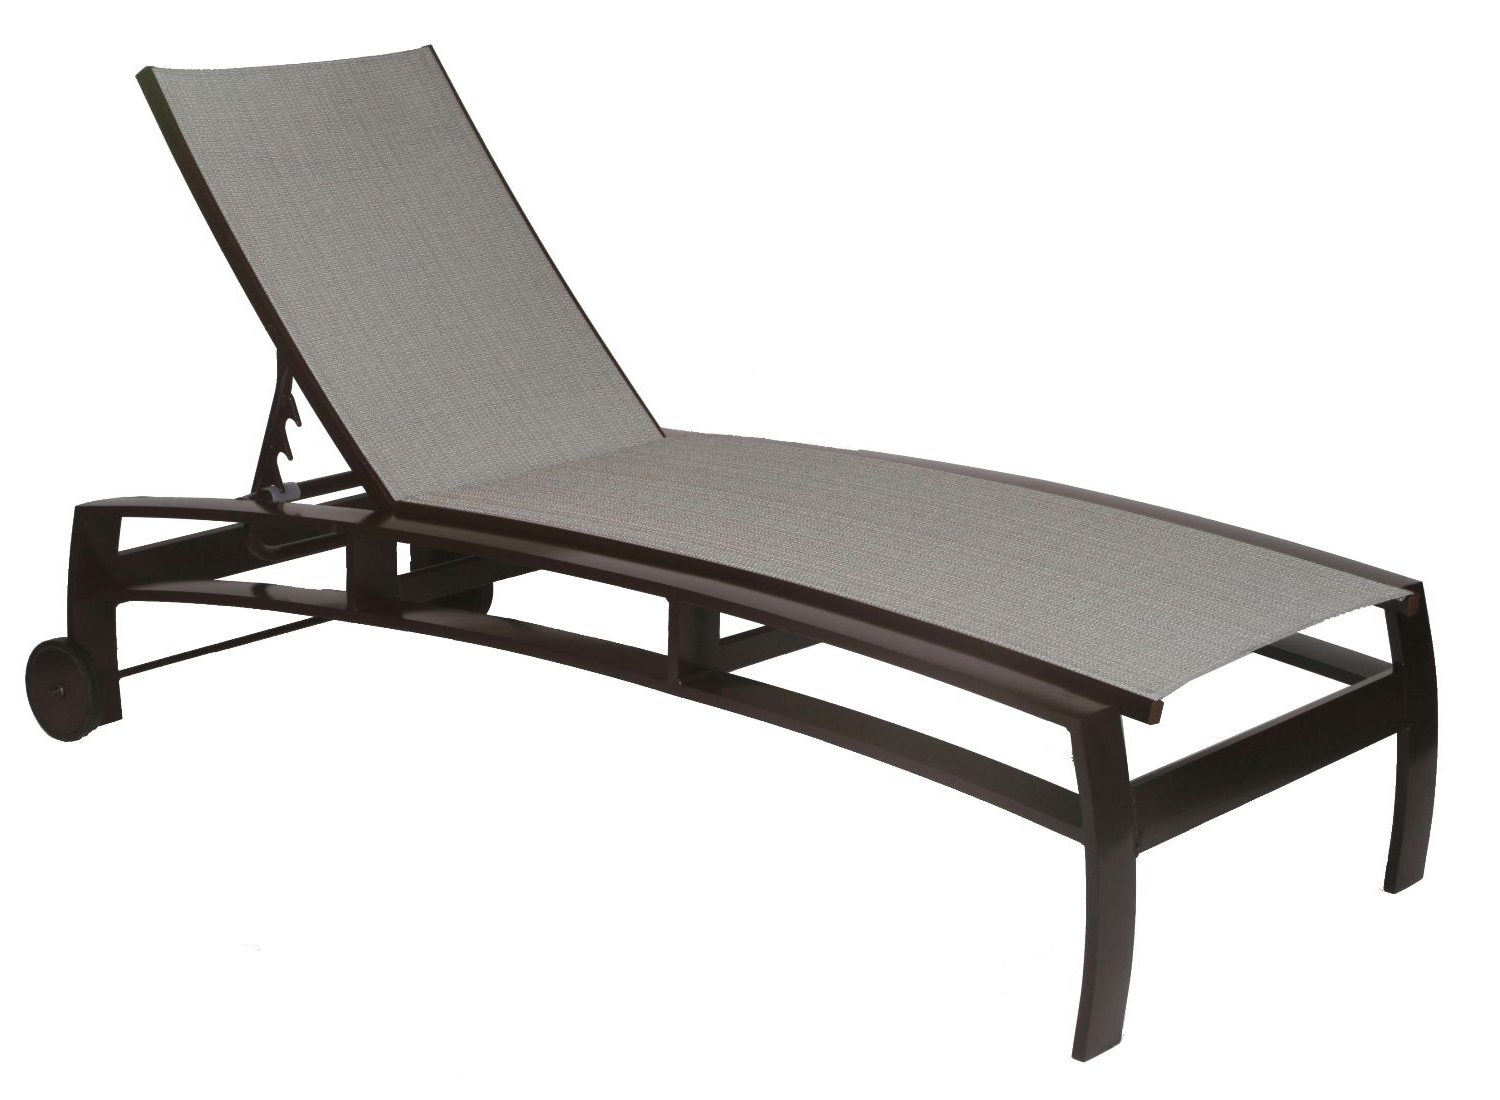 Sling Chaise Lounge Chairs For Outdoor In Fashionable Sling Chaise Lounge – Sling Chaise Lounge Outdoor Furniture, Sling (View 13 of 15)